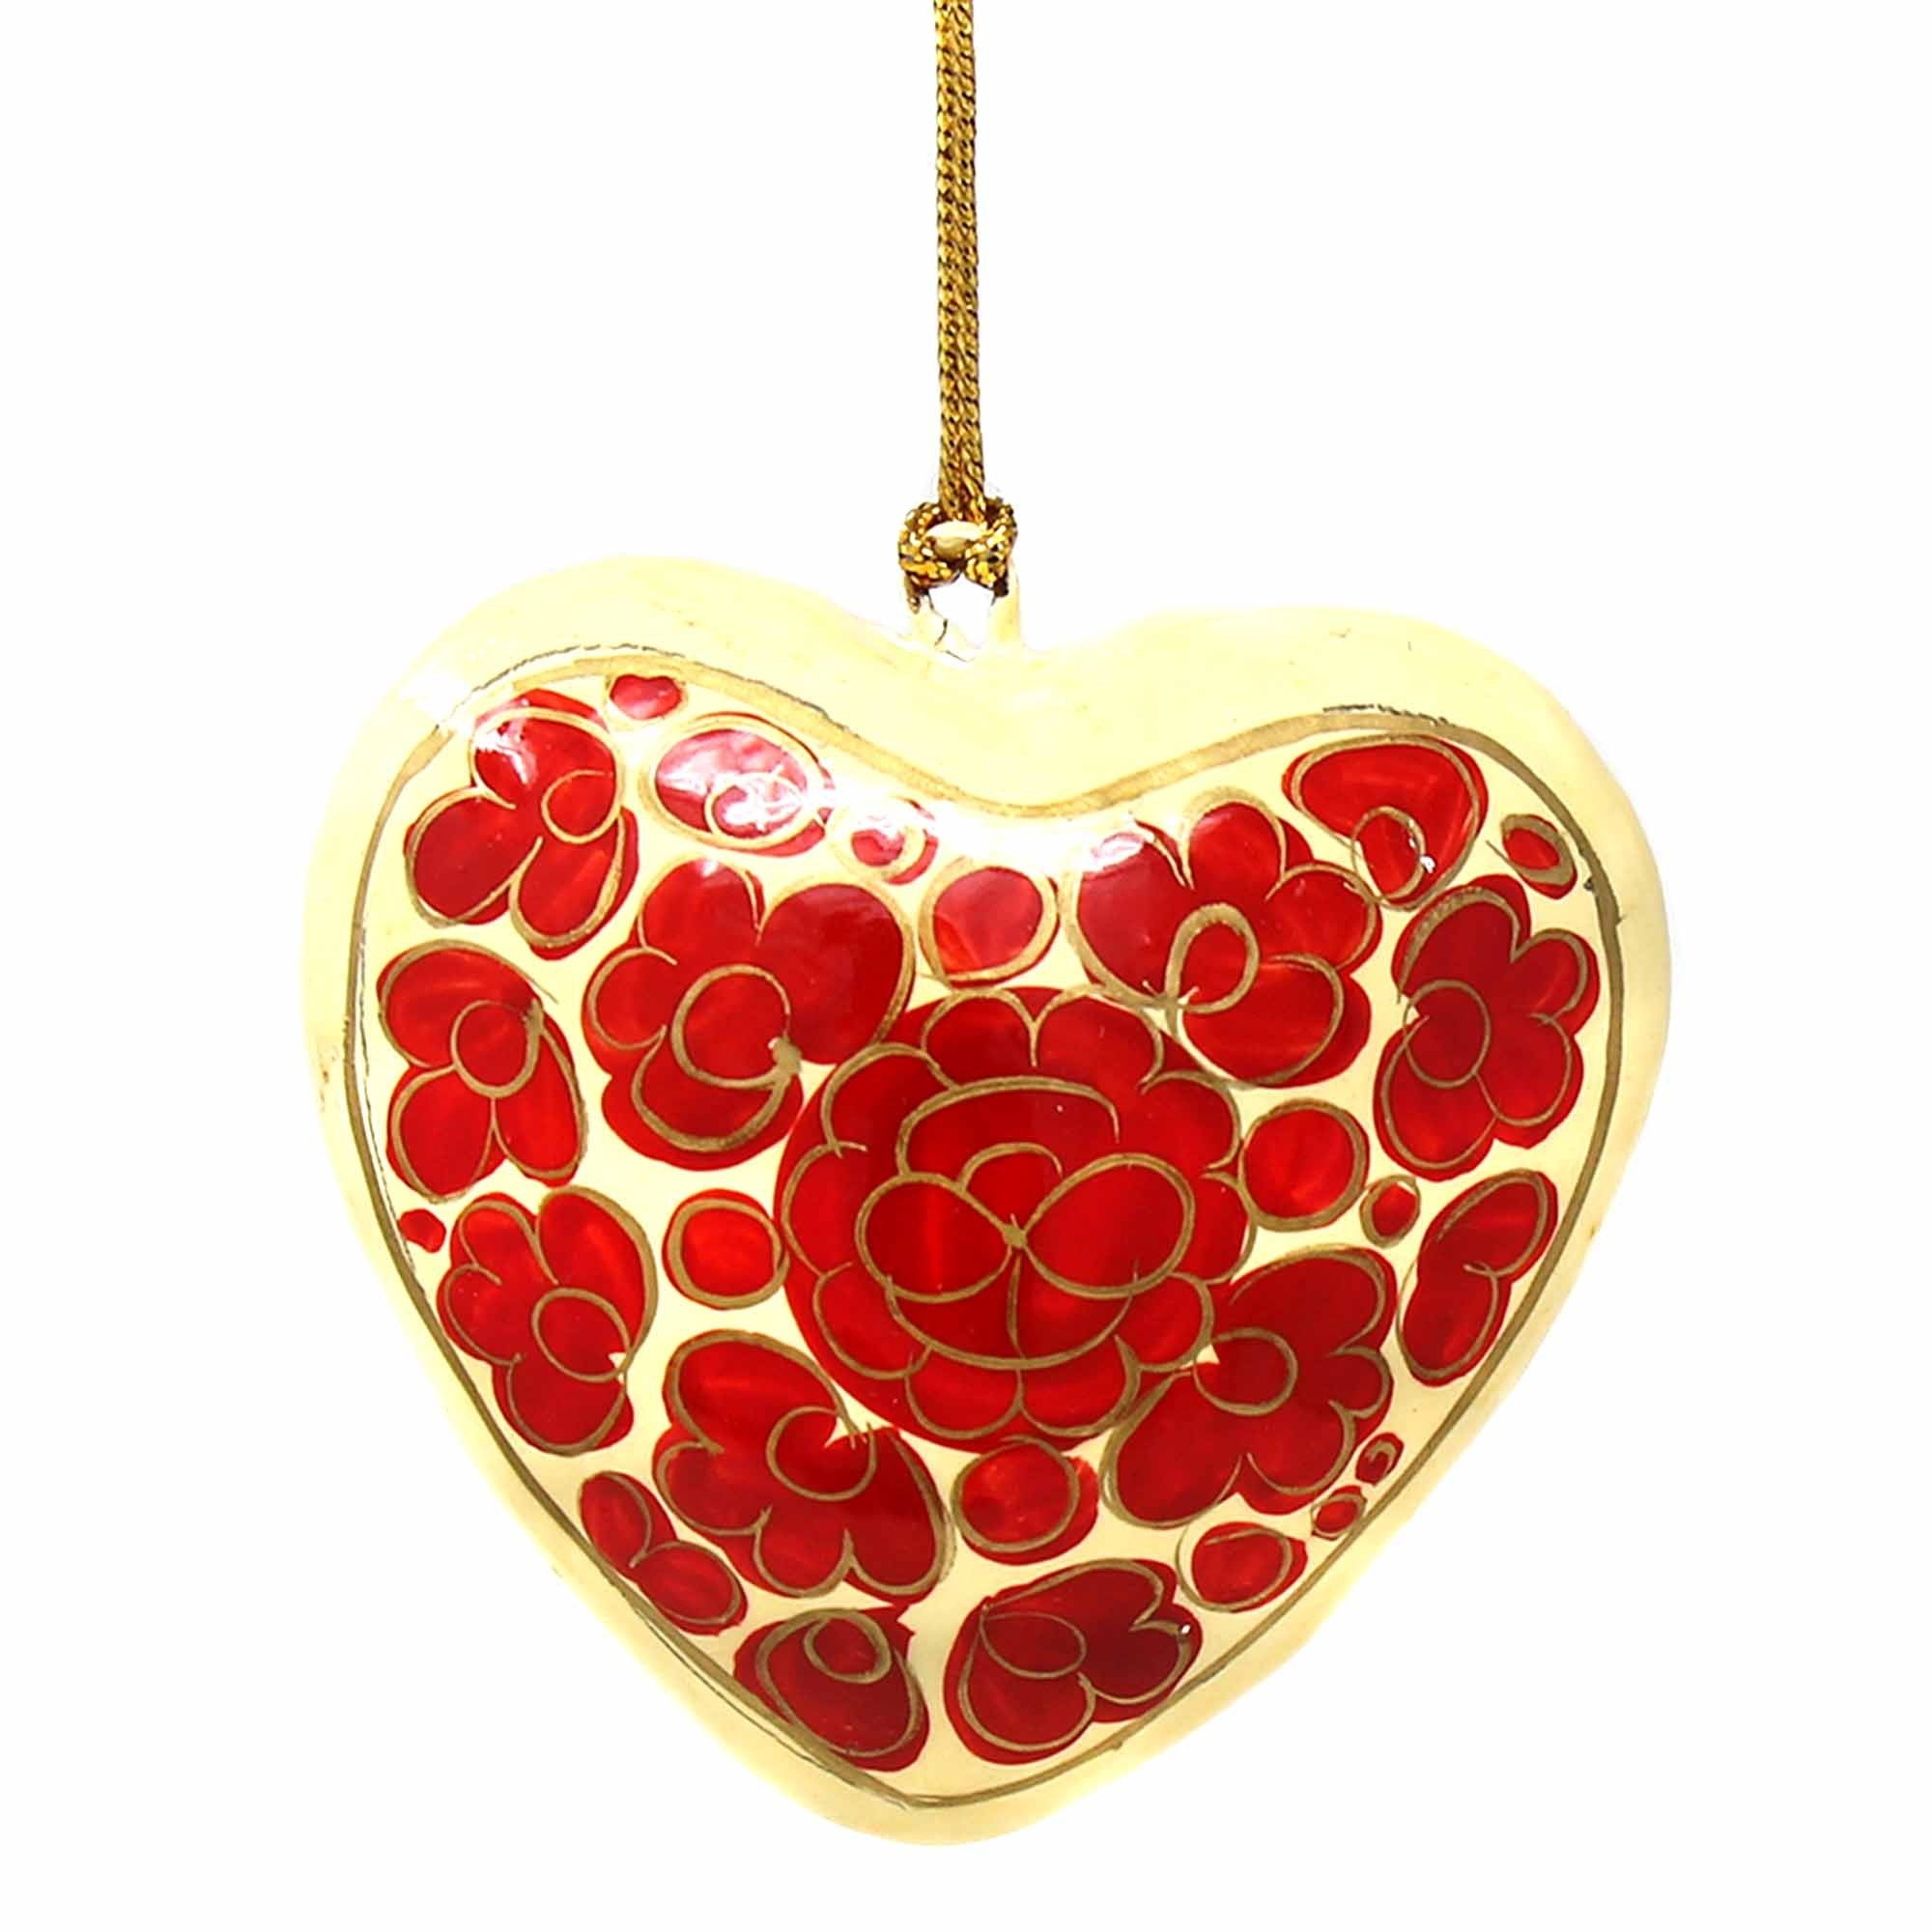 Handpainted Red Floral Papier Mache Hanging Heart Ornament